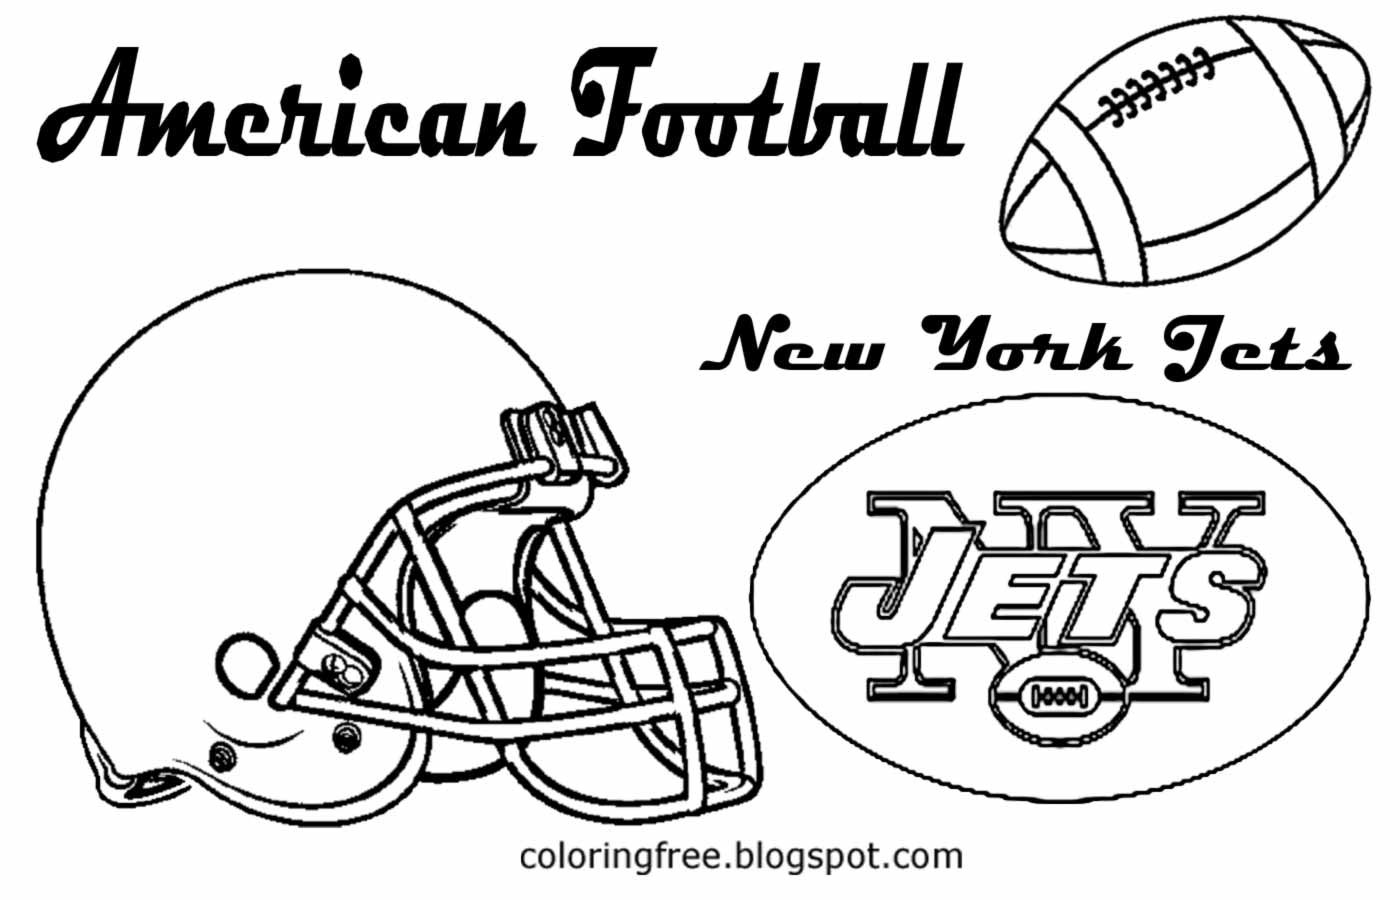 new york jets coloring pages new york jets coloring pages jets pages new york coloring